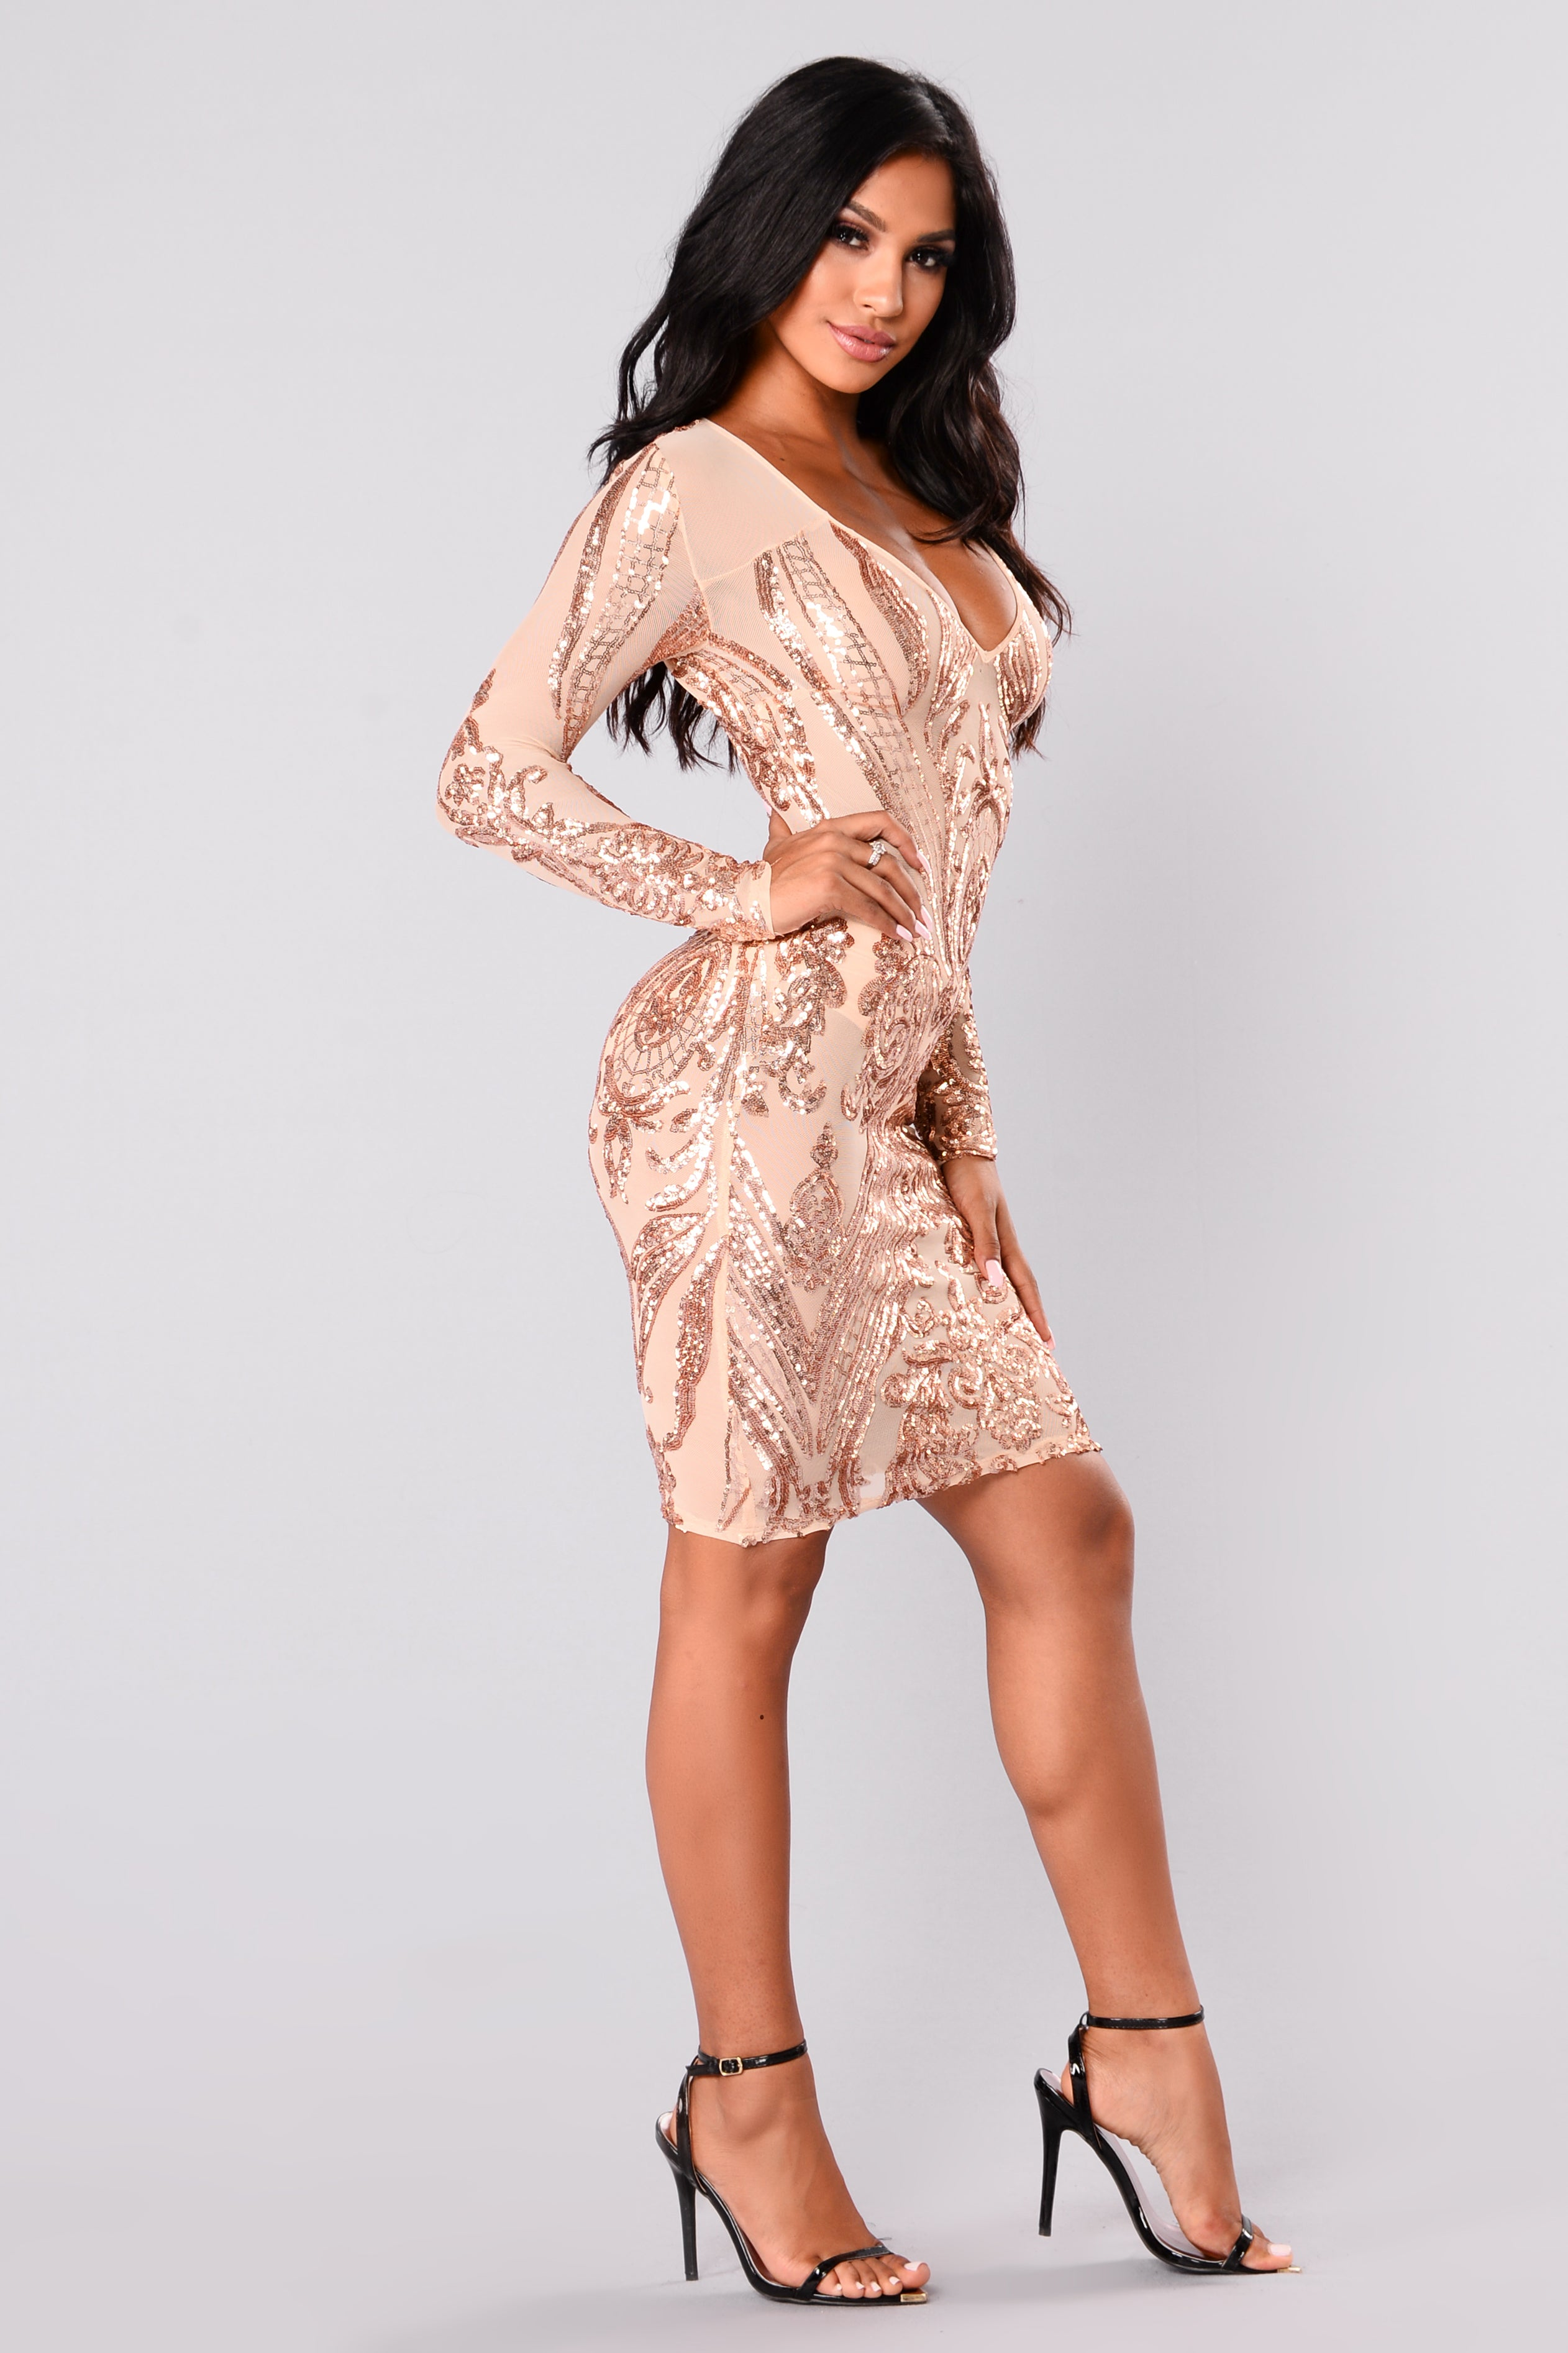 Miss Fortune Sequin Dress - Nuderose Gold-3375